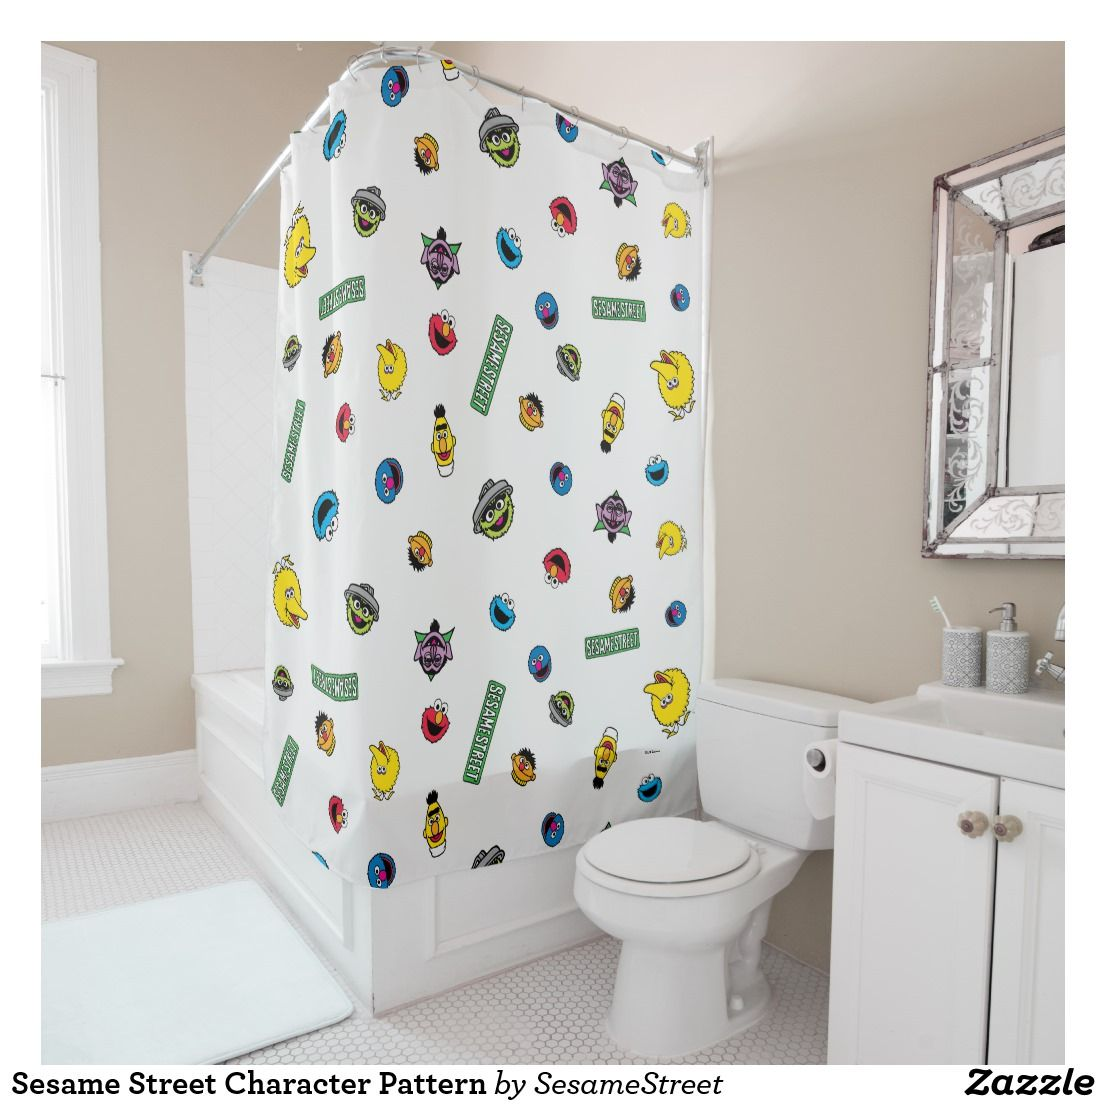 Sesame Street Character Pattern Shower Curtain Zazzle Com With Images Patterned Shower Curtain Colorful